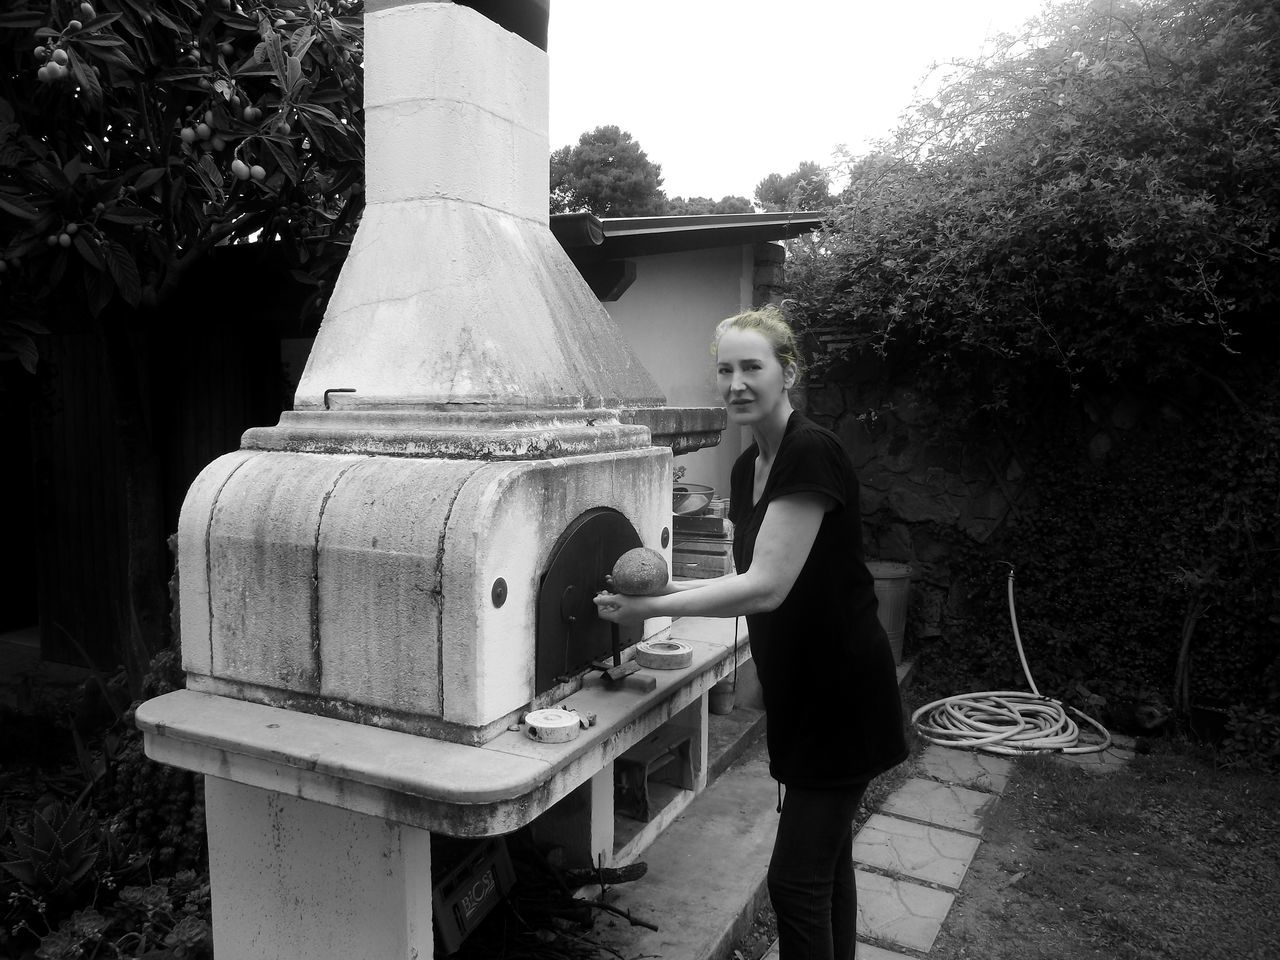 Home-Made Bread The Portraitist - 2017 EyeEm Awards Outdoors Young Women Real People People One Person Woman Portrait Smiling Portrait MUR B&W Looking At Camera Black And White Working Women Bread Making Oven Outdoors Photograpghy  Holisticlifestyle BYOPaper!